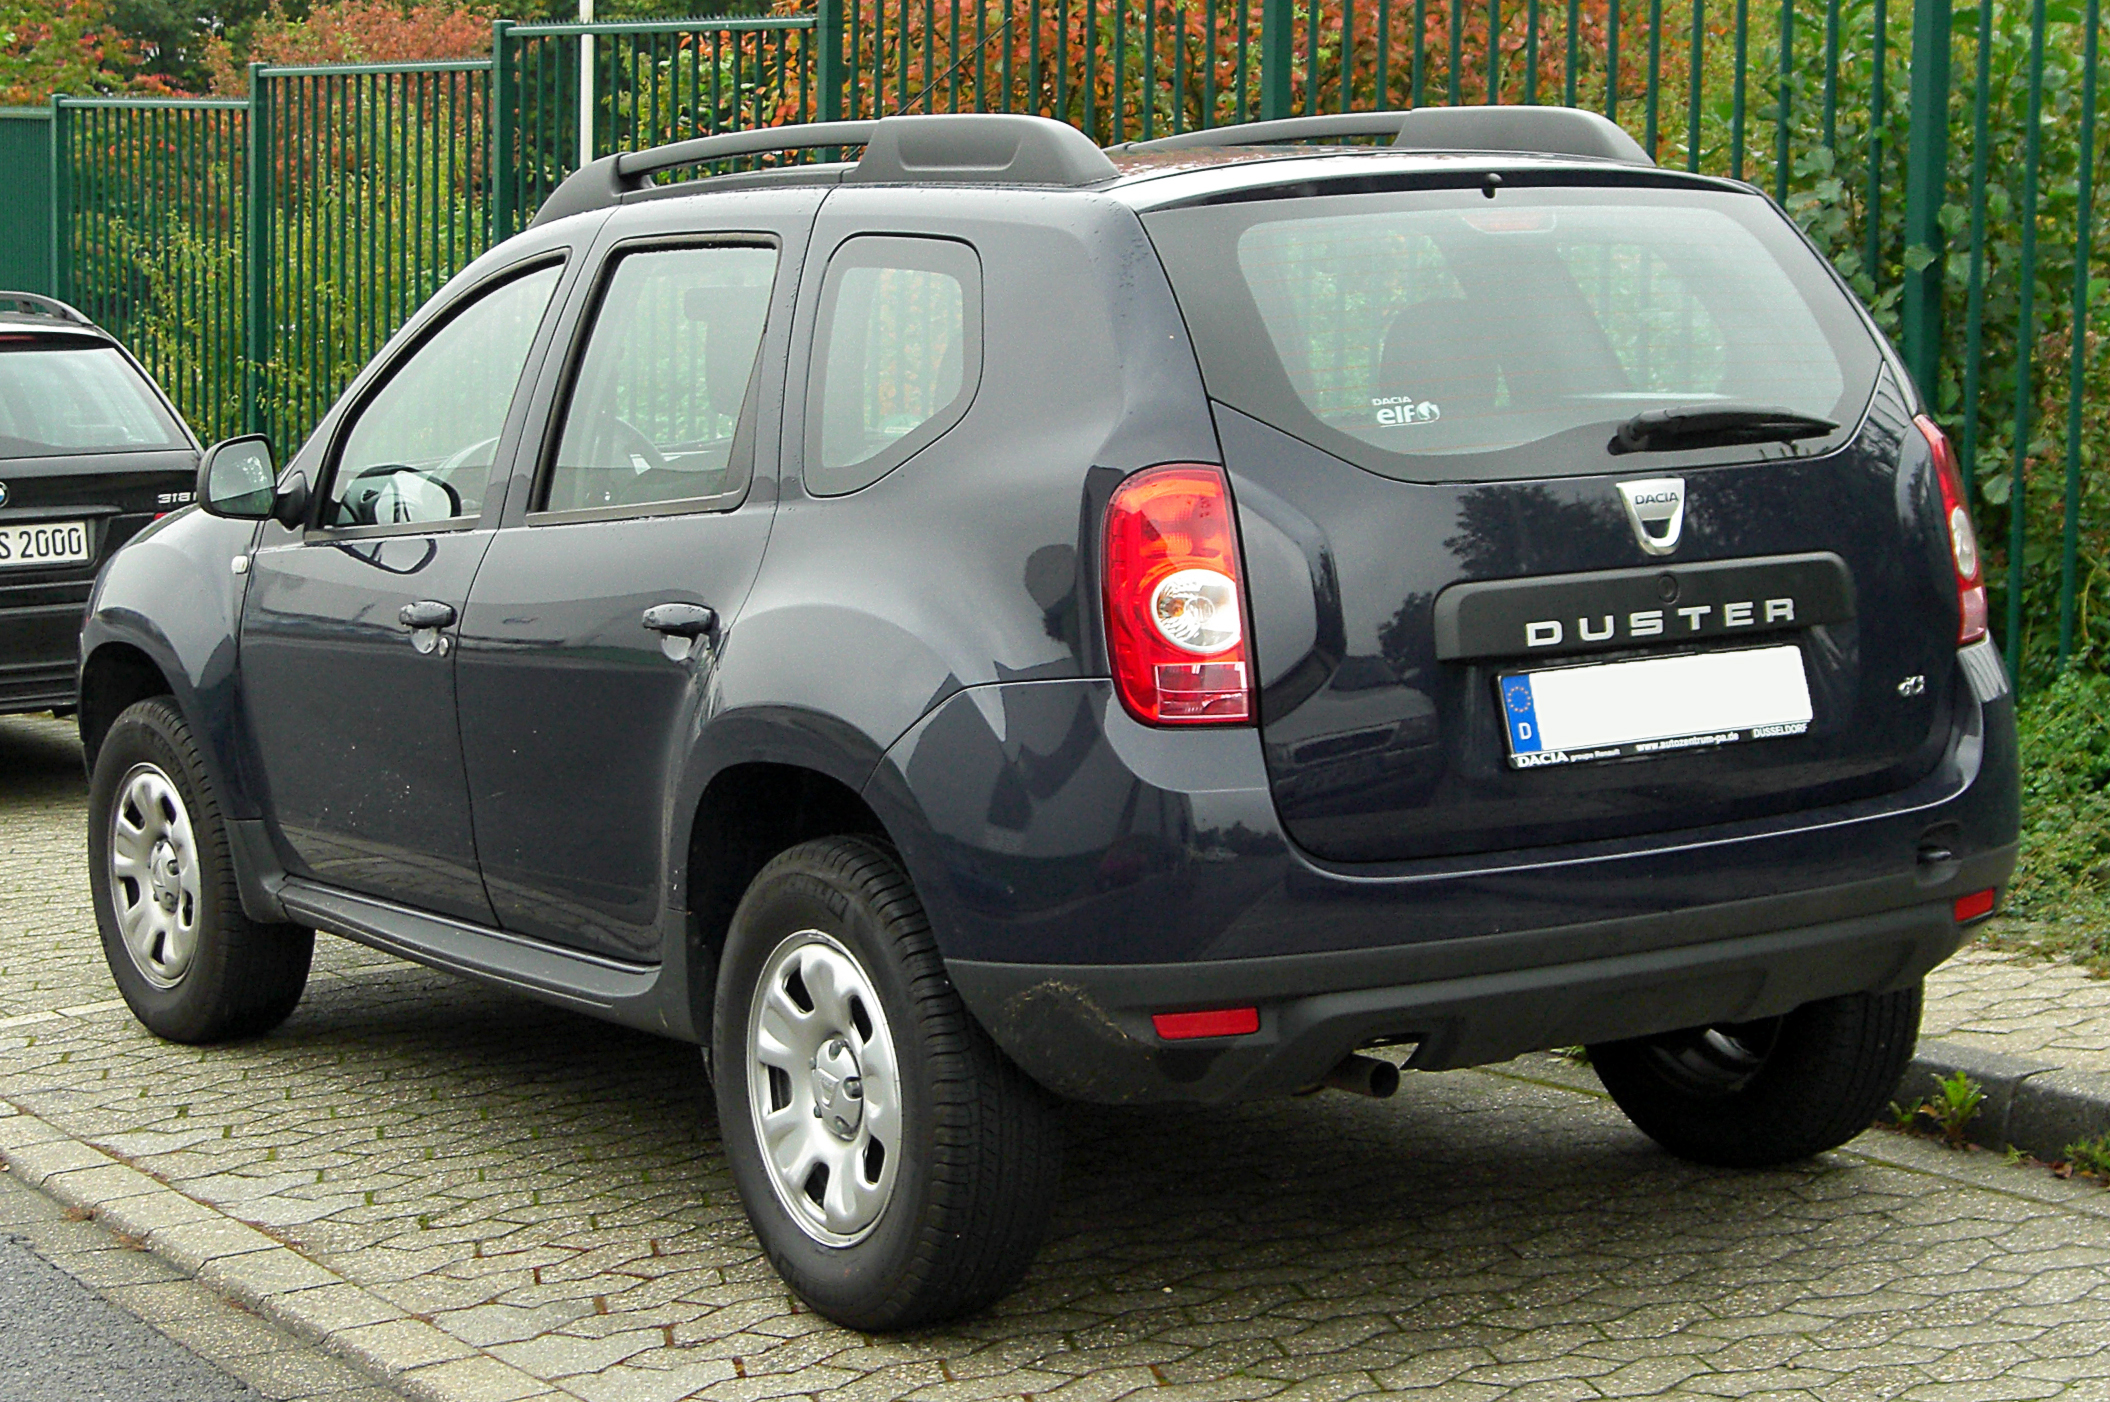 Dacia_Duster_1.5_dCi_rear_20100928.jpg